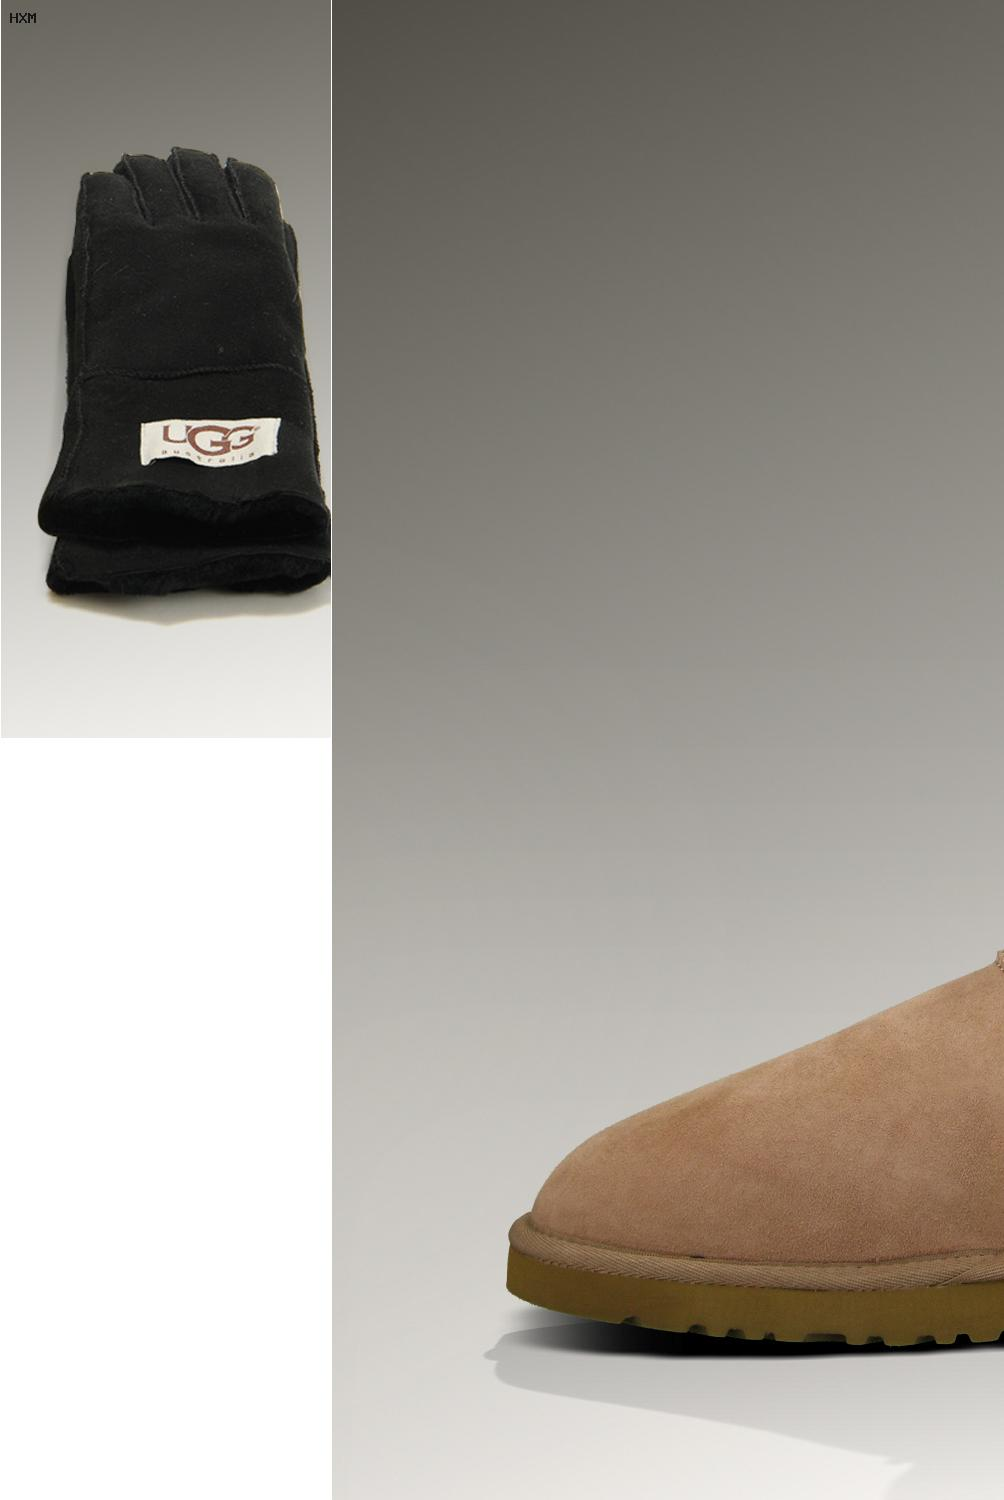 ugg paillettes outlet